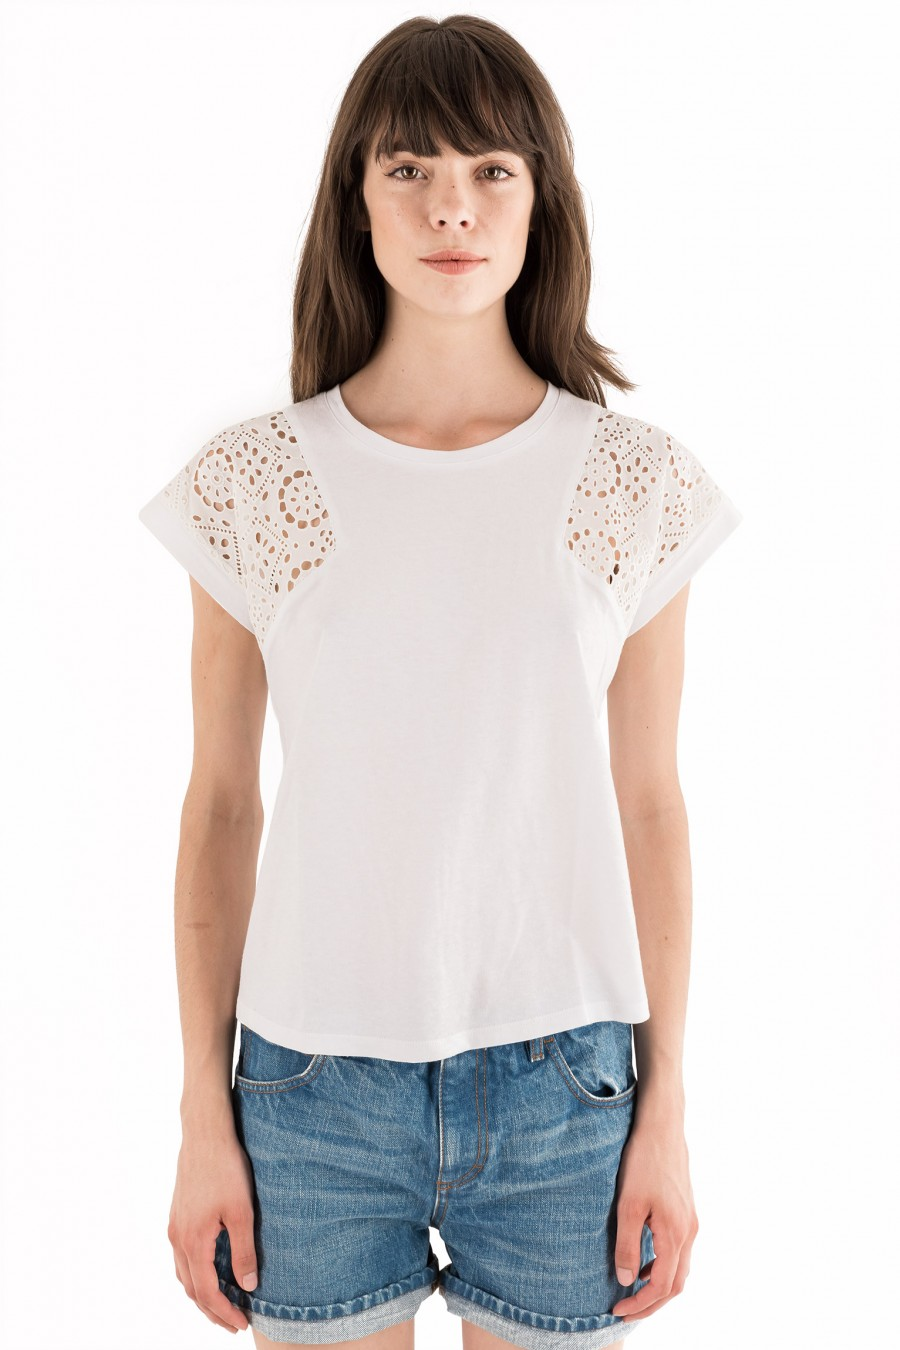 T-shirt with Broderie anglaise sleeves